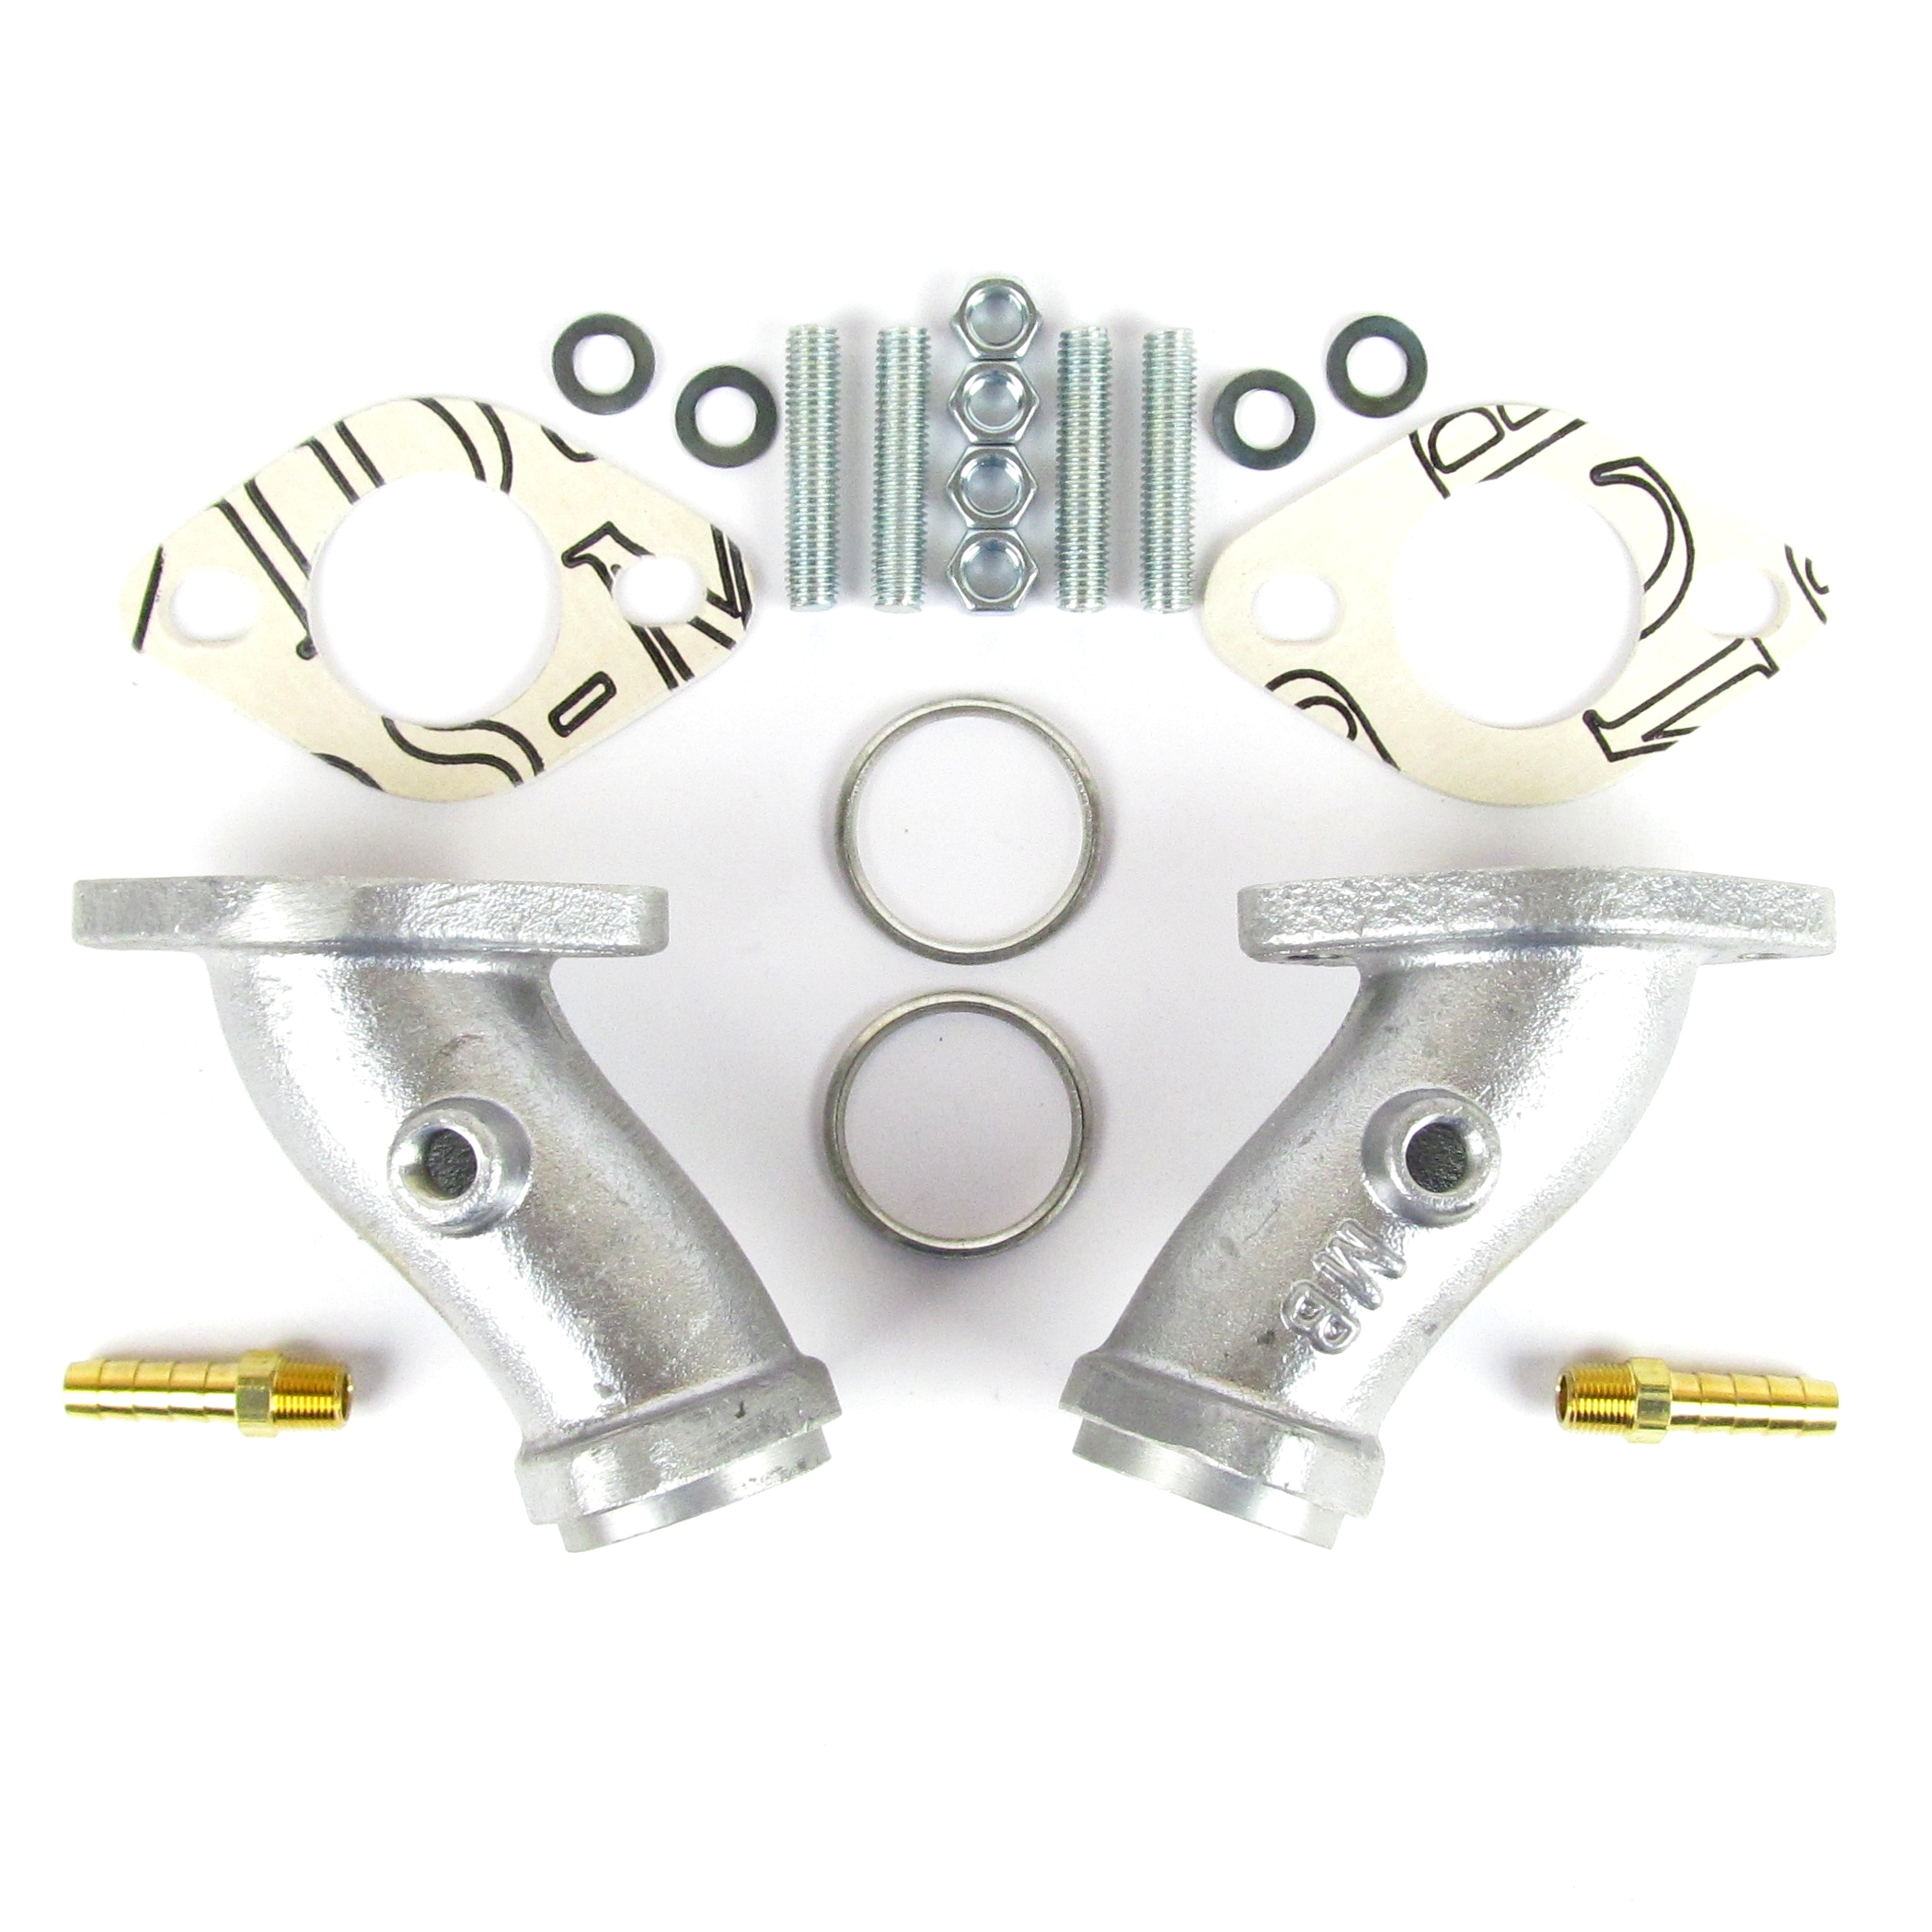 Air-Cooled VW Beetle / Camper Type 1 / T1 / T3 Single-Port WEBER 34 ICT Inlet Manifold KIT